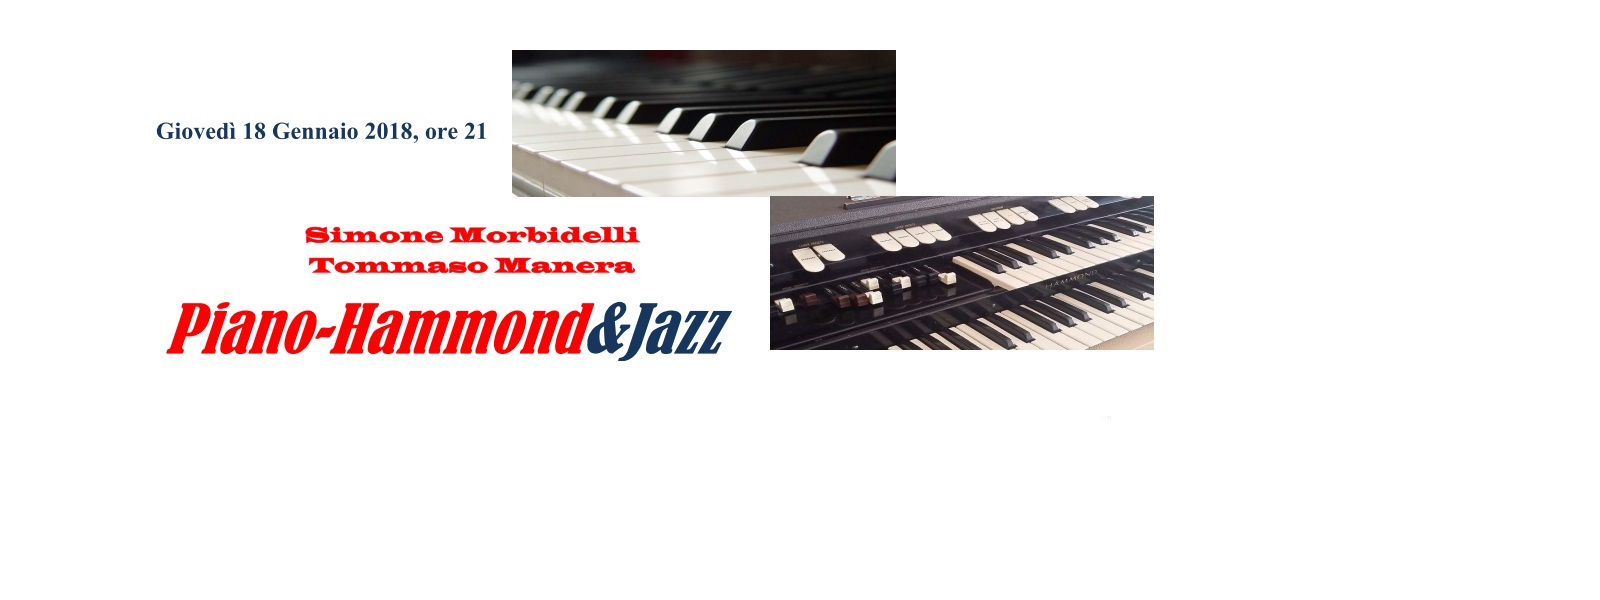 PIANO-HAMMOND & JAZZ